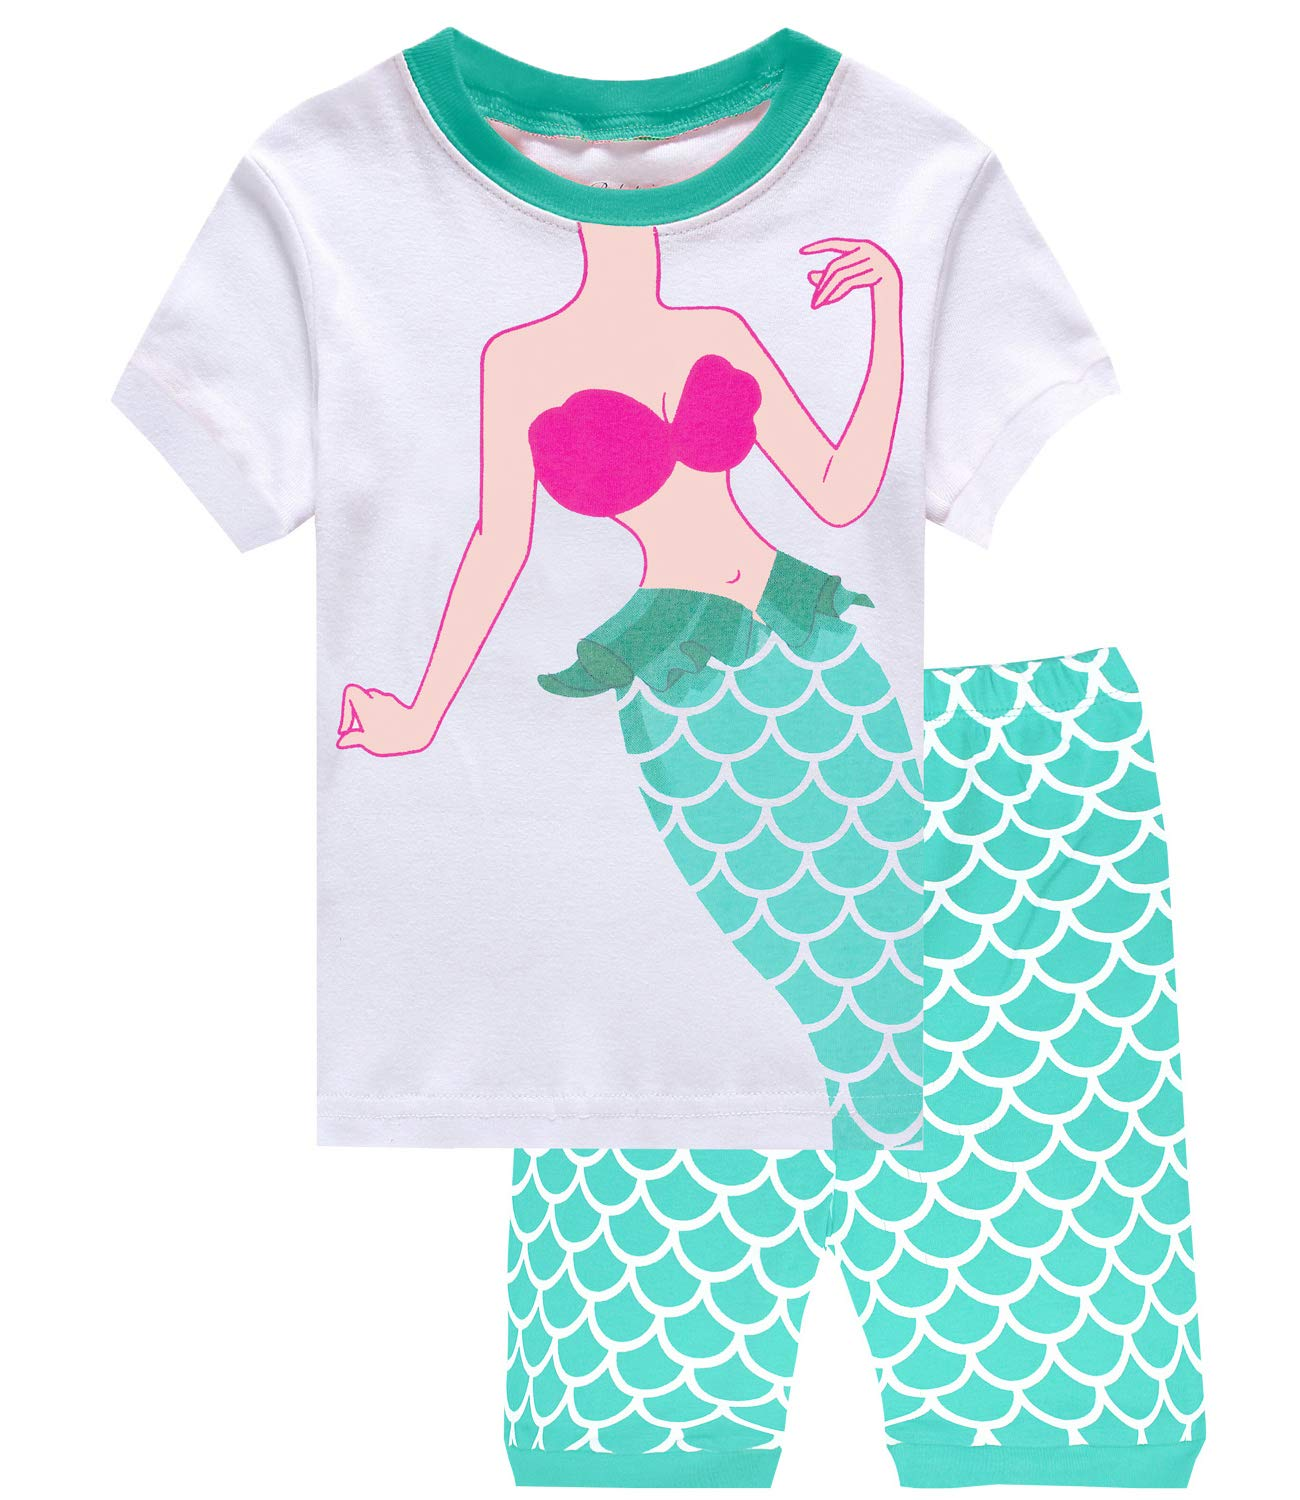 Little Pajamas Mermaid Sleepwear 100% Cotton Summer Short Toddler Pjs Clothes Shirts Awhite/Mermaid 8